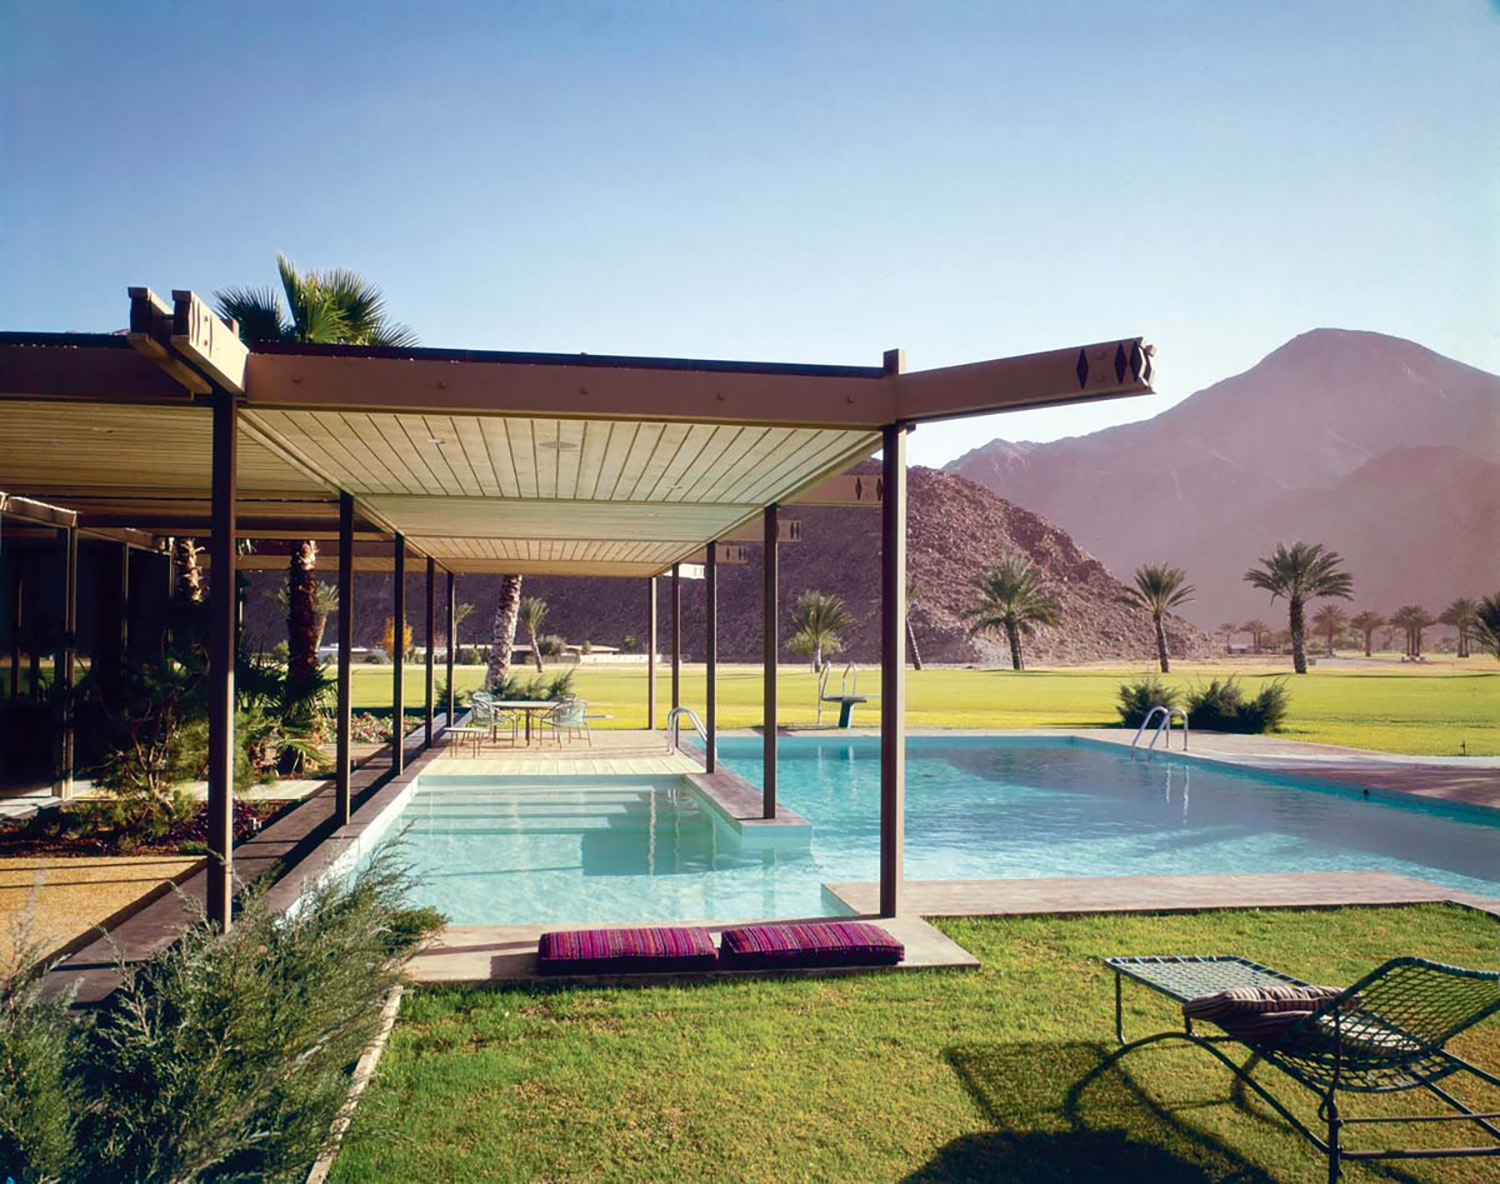 Consider This Book A Beautiful Ode To Midcentury Leisure And Luxury {Consider This Book A Beautiful Ode To Midcentury Leisure And Luxury} – English